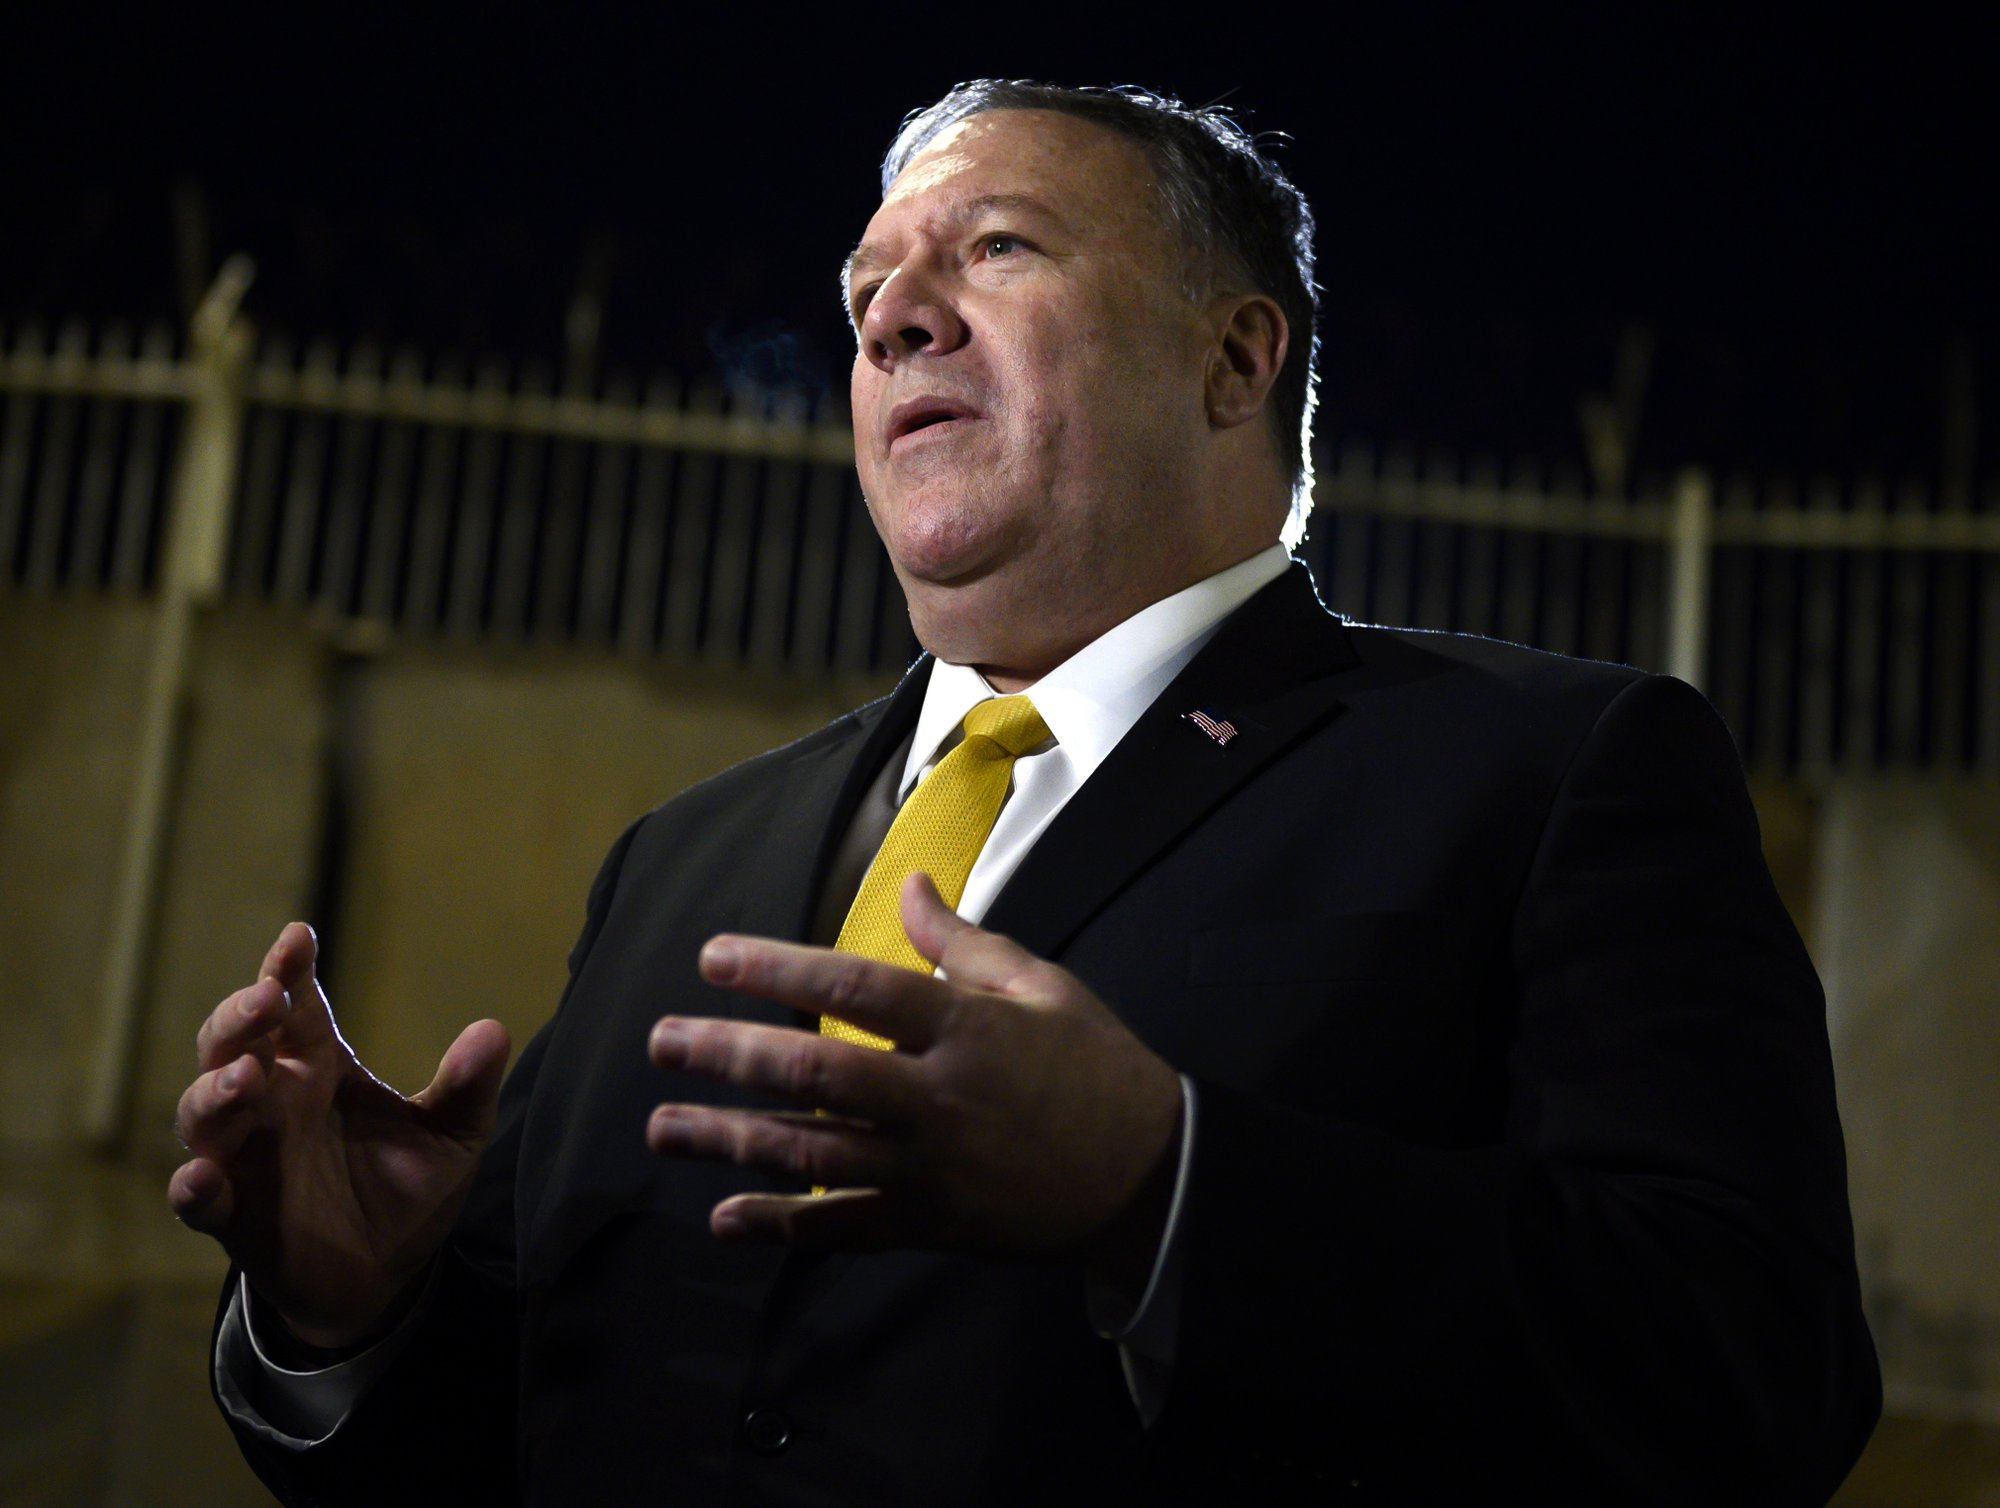 U.S. Secretary of State Mike Pompeo speaks to the media at the U.S. Embassy compound in the Iraqi capital Baghdad after his tour around Irbil in the Kurdish autonomous region of northern Iraq on Wednesday, Jan. 9, 2019. (Andrew Caballero-Reynolds/Pool Photo via AP)